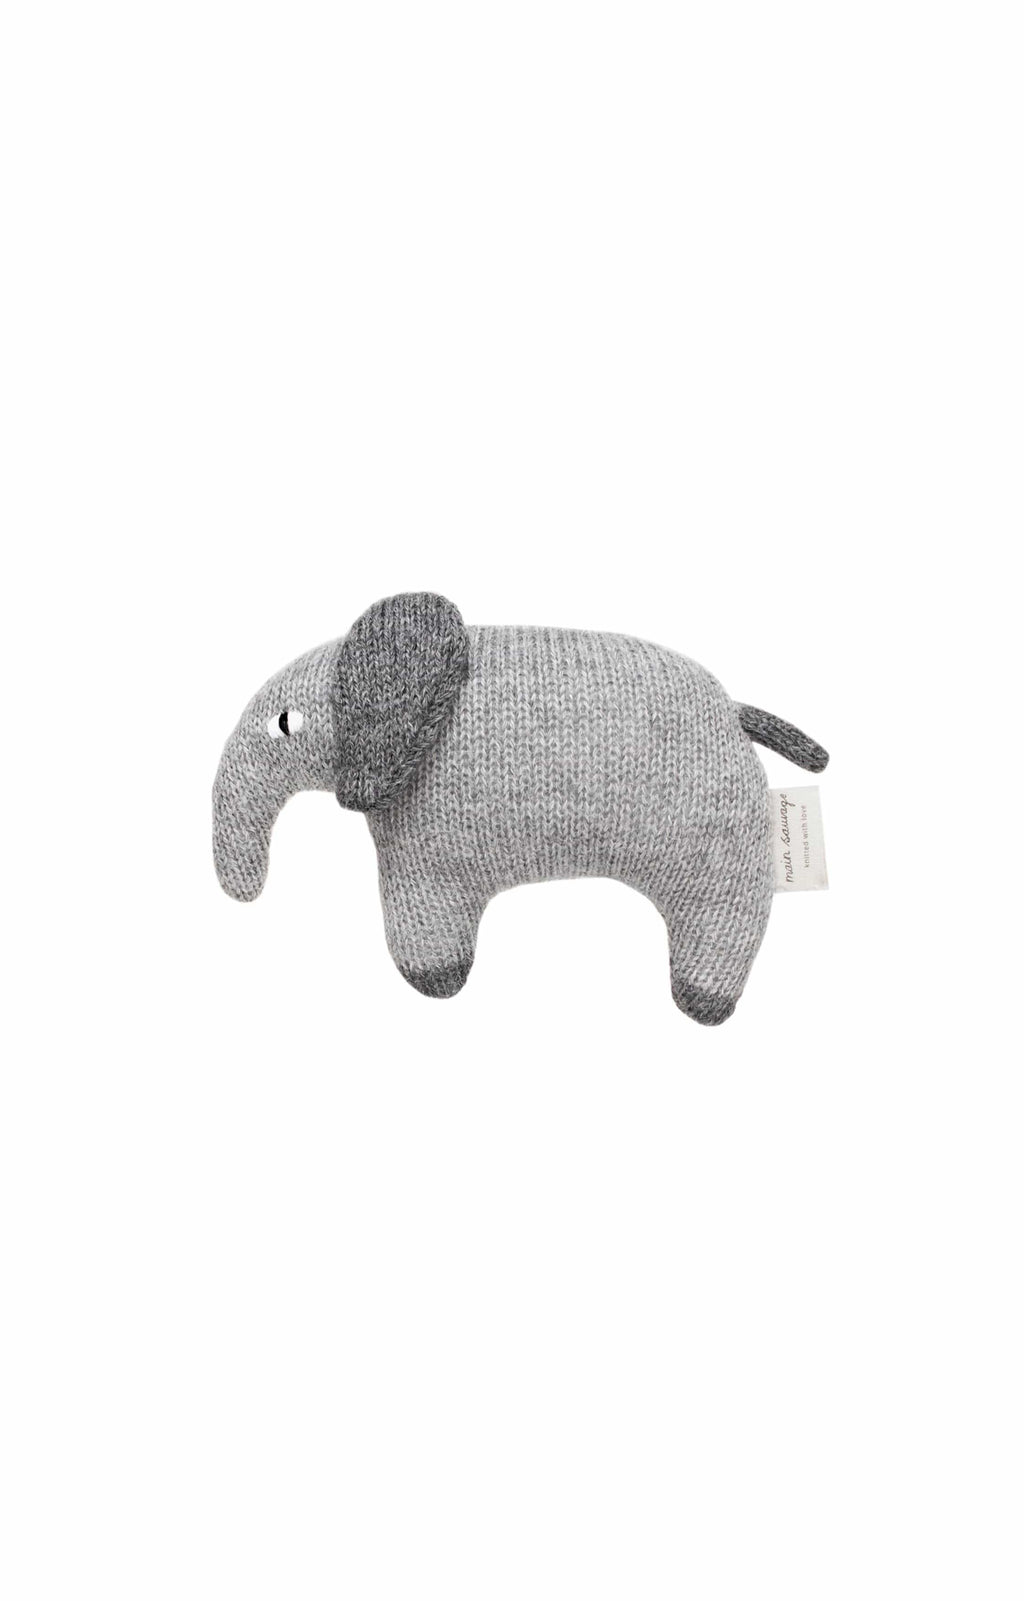 Main Sauvage Elephant Knit Toy - Hello Little Birdie